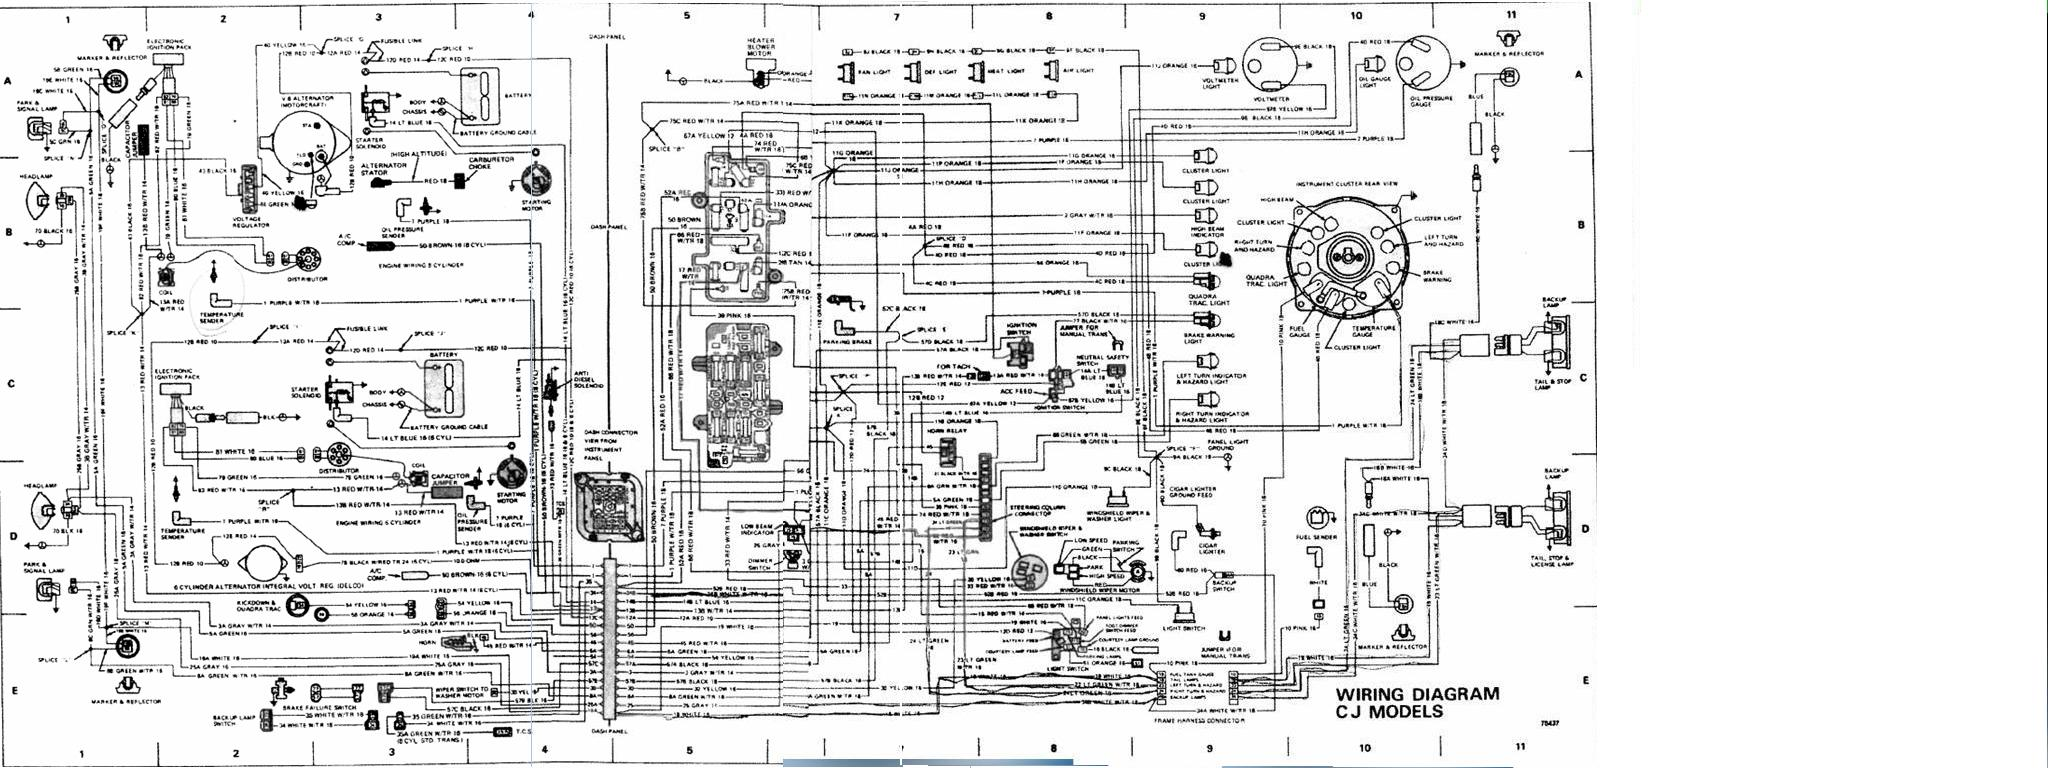 painless wiring harness diagram 1963 chevy truck turn signal i just installed a along with new